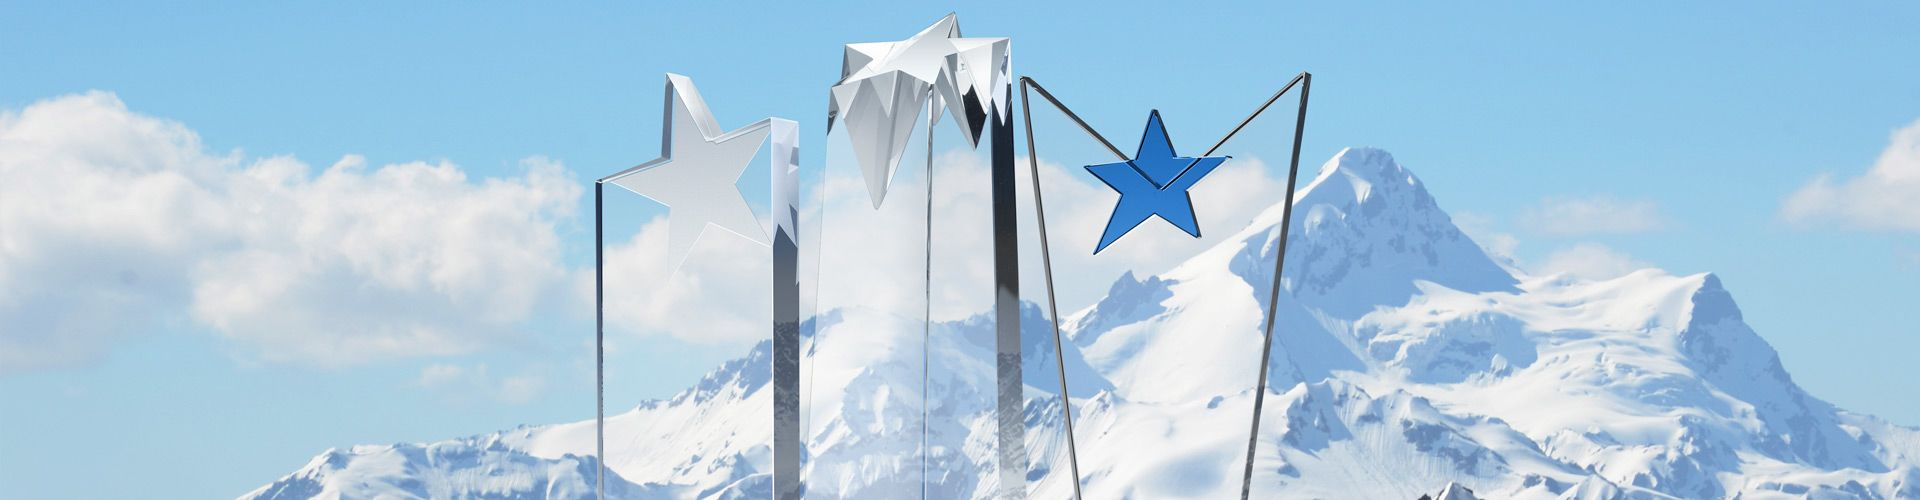 Custom Crystal Star-Shaped Trophy Plaques & Awards - Banner 1